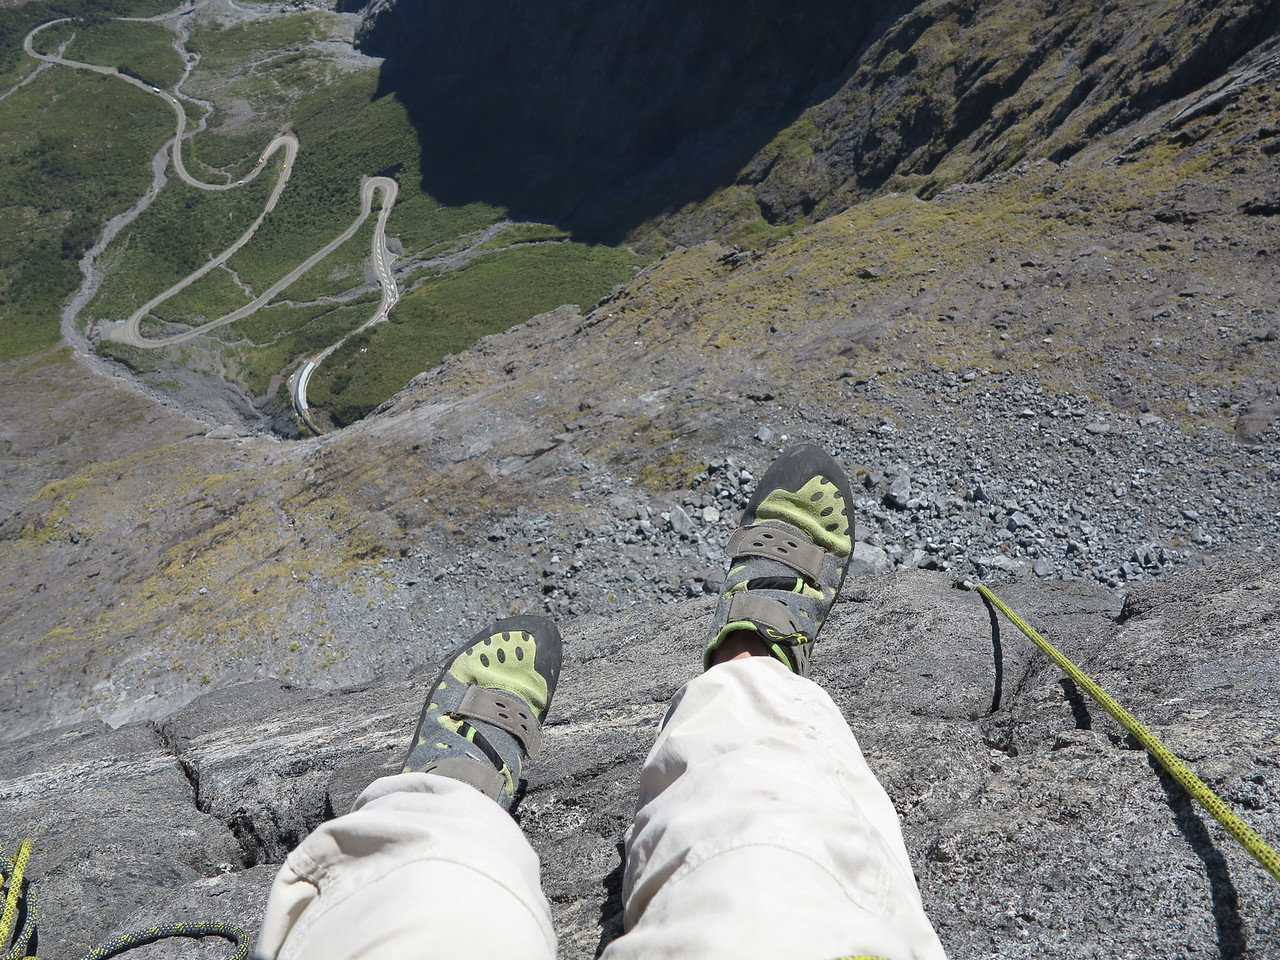 View from the belay above the second pitch